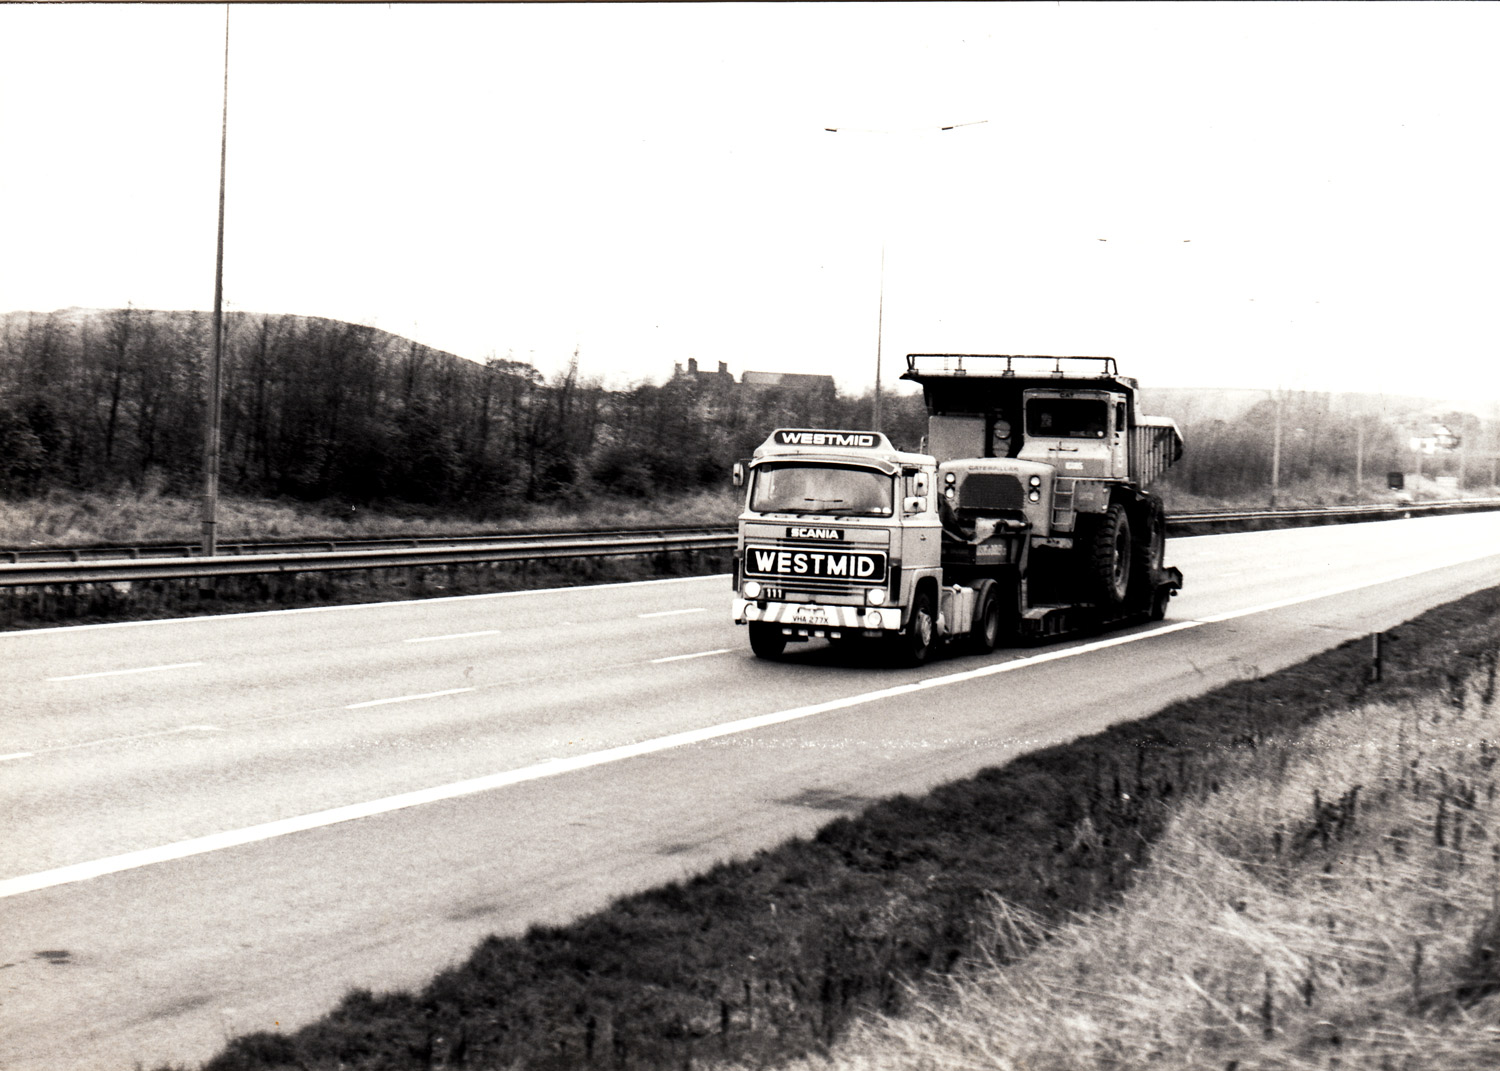 Westmid's first introduction to Scania with this LB111, seen here on a heavy haulage trip from Scotland to South Wales with a Hudsons of Dudley trailer.